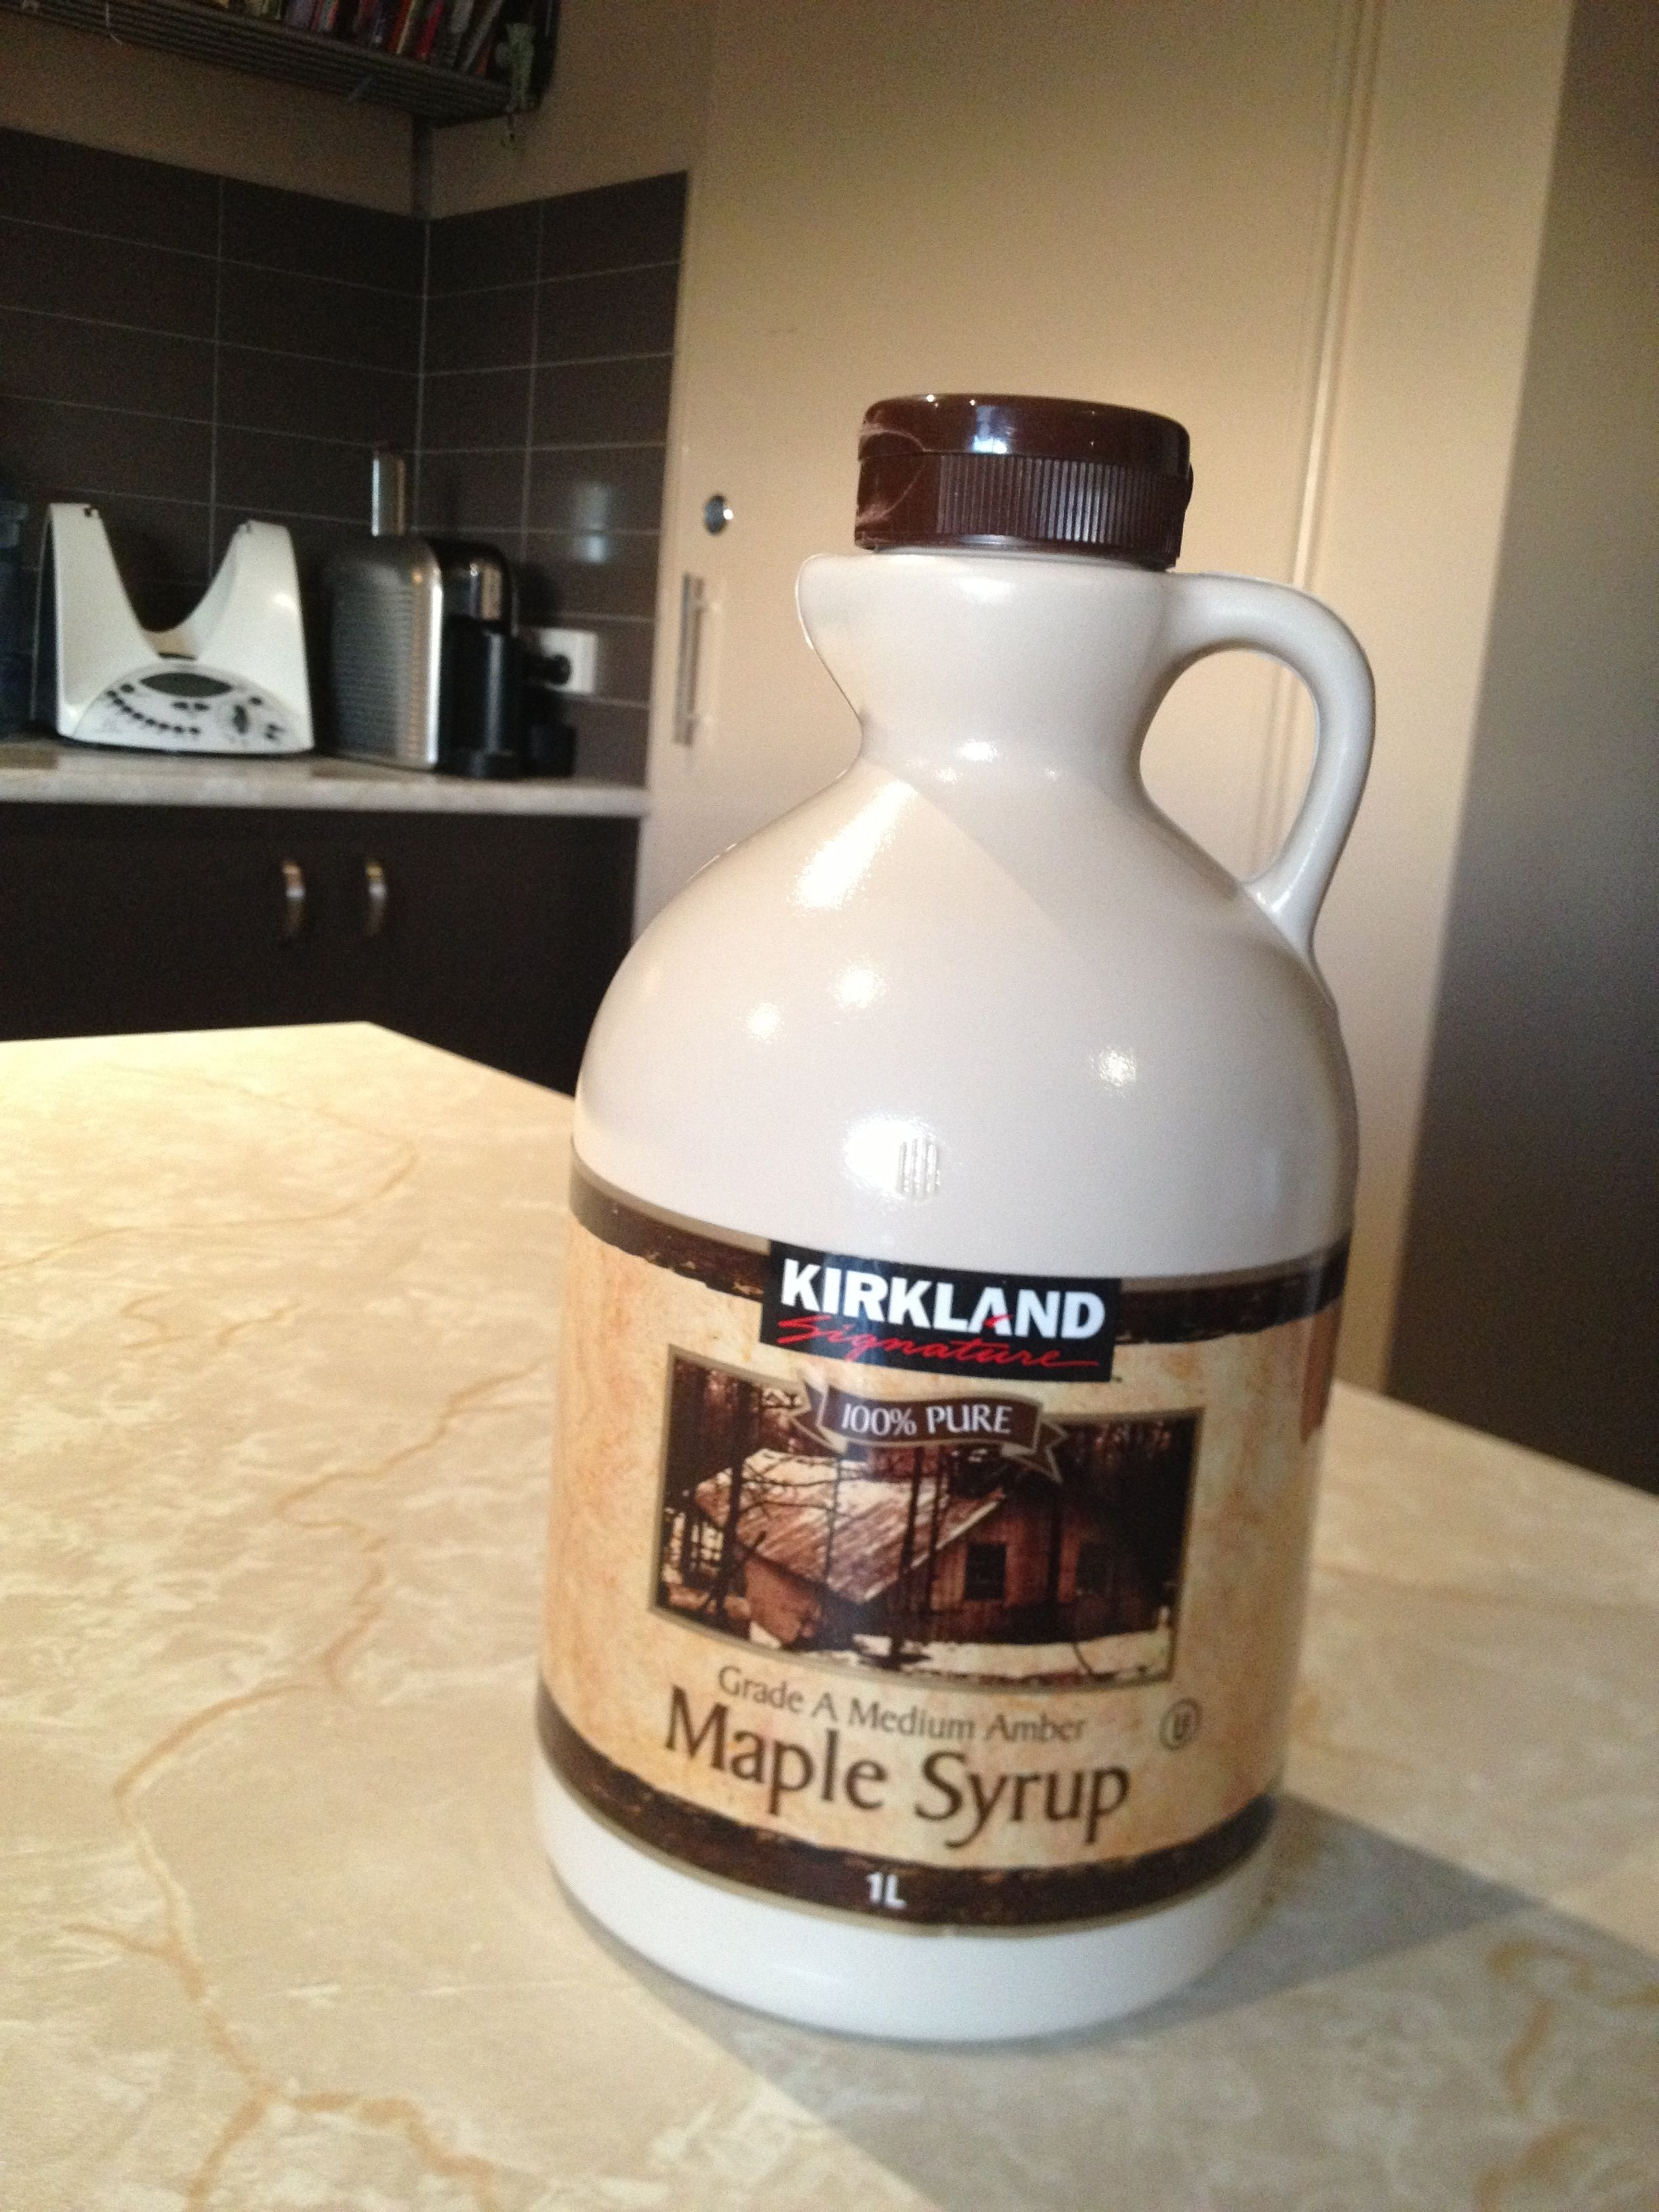 Kirkland 100 Pure Maple Syrup 1l 15 89 Costco Costco This Is